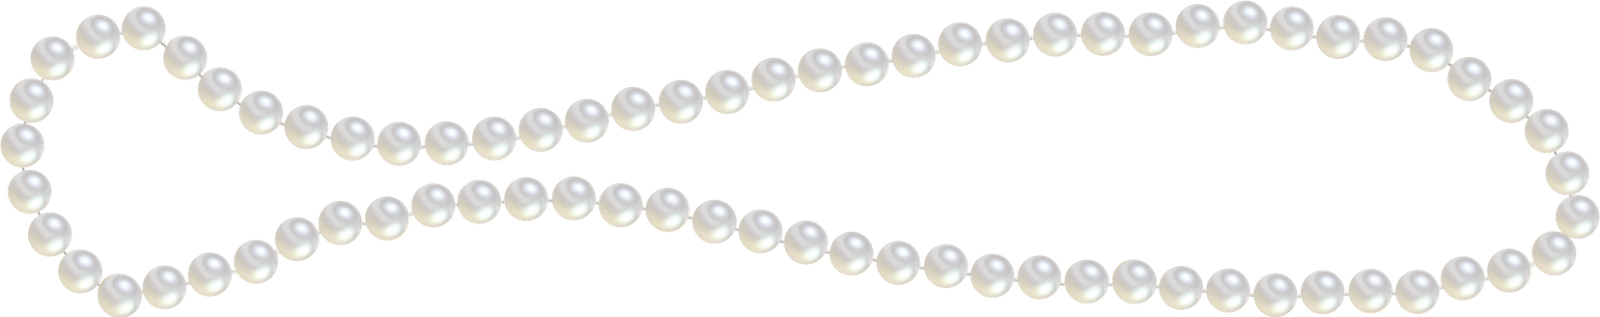 Grab and download Pearls Icon Clipart